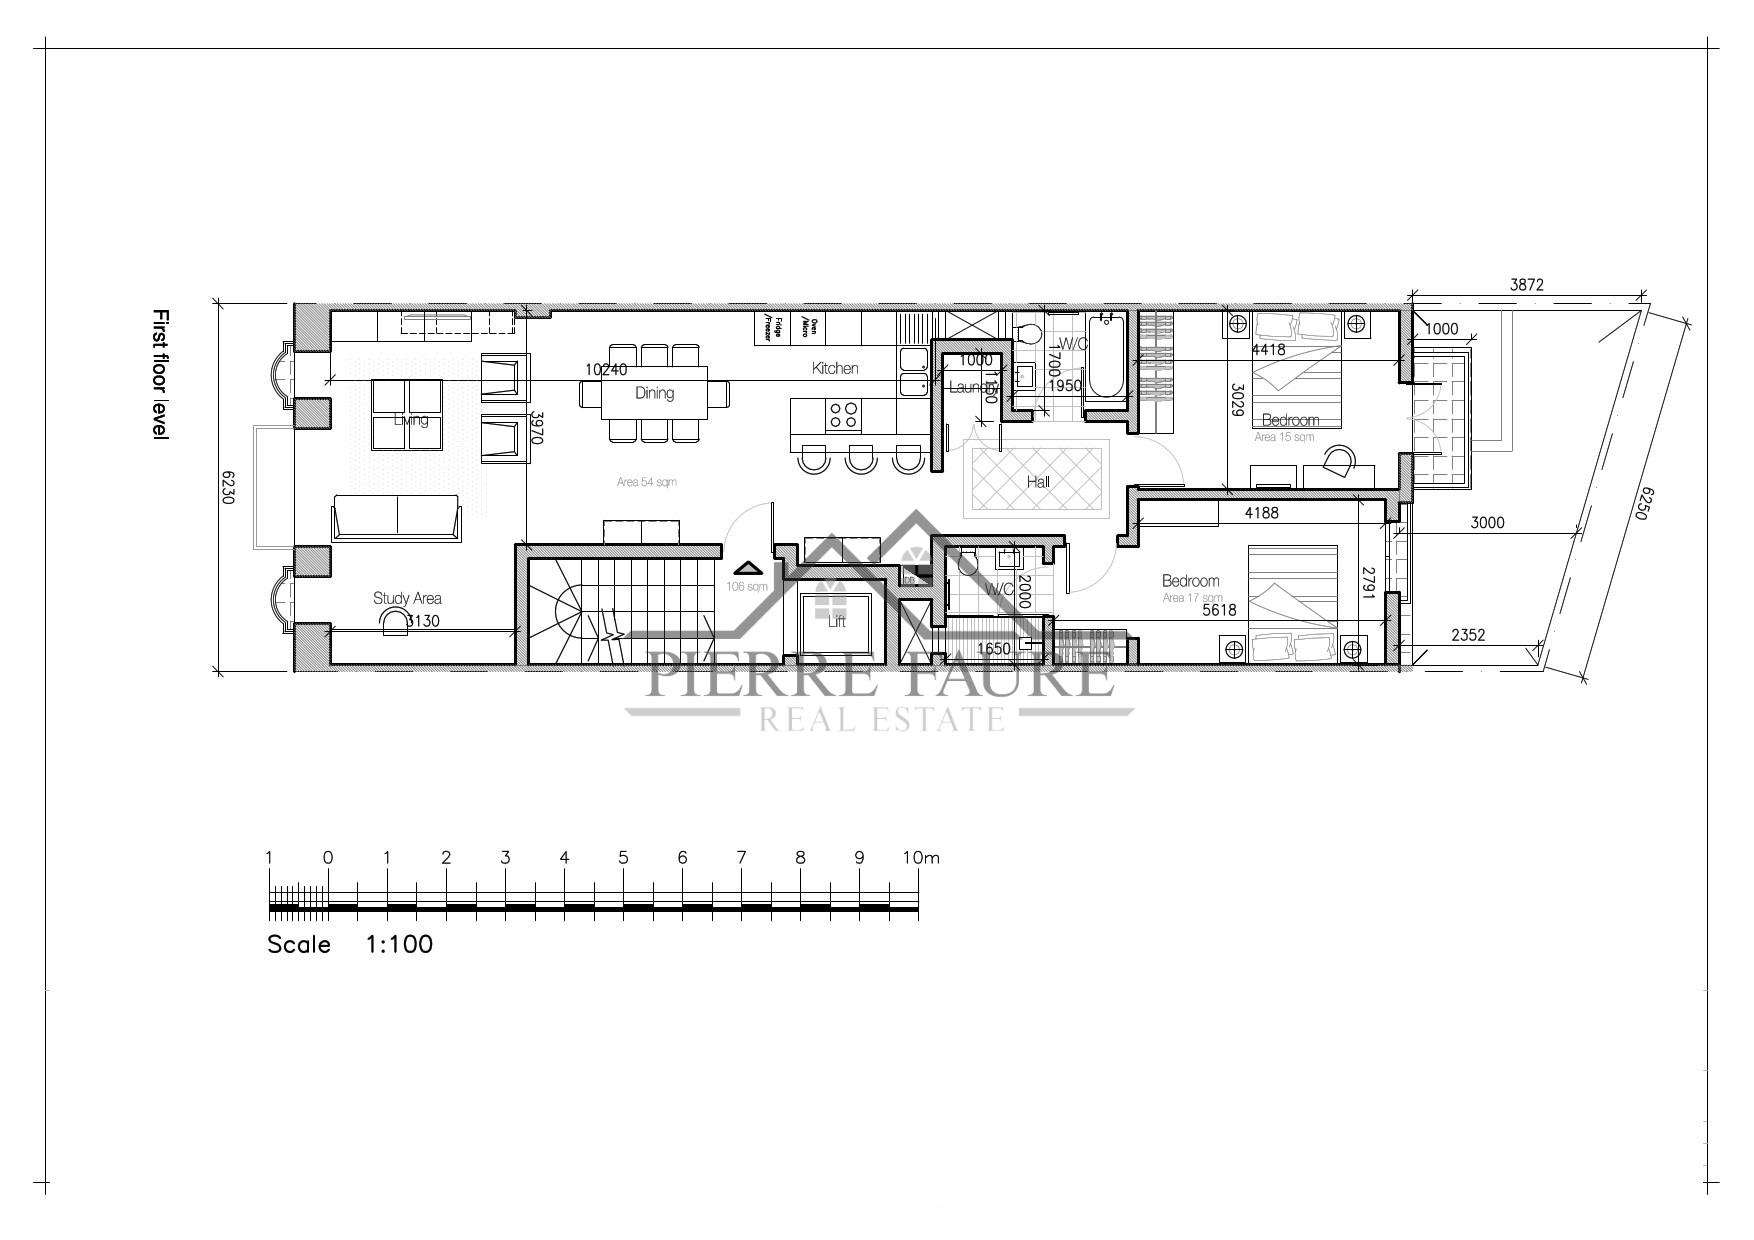 Paola - Residential 2 bedroom apartment Plan-1